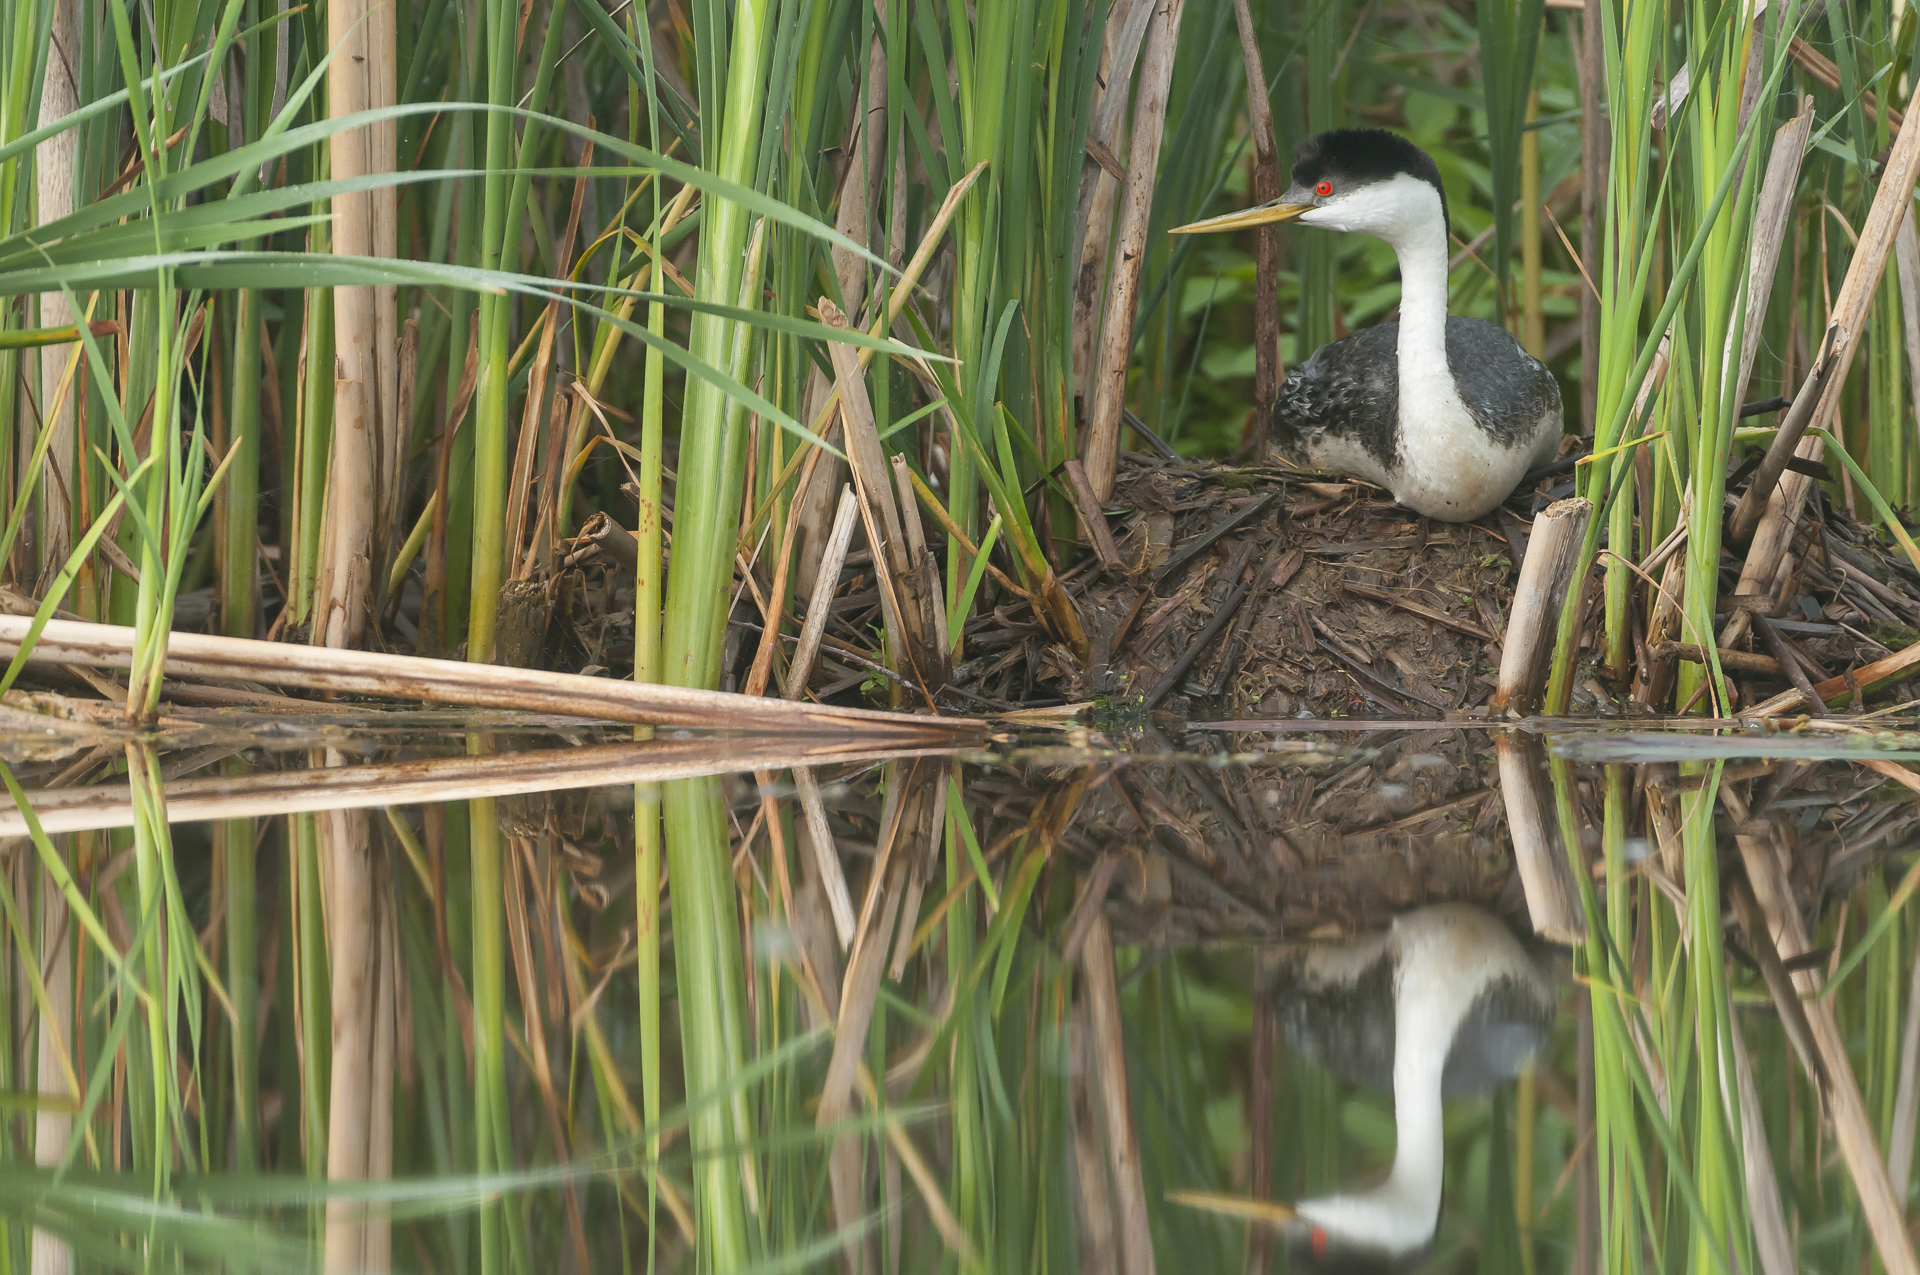 Western grebe on nest